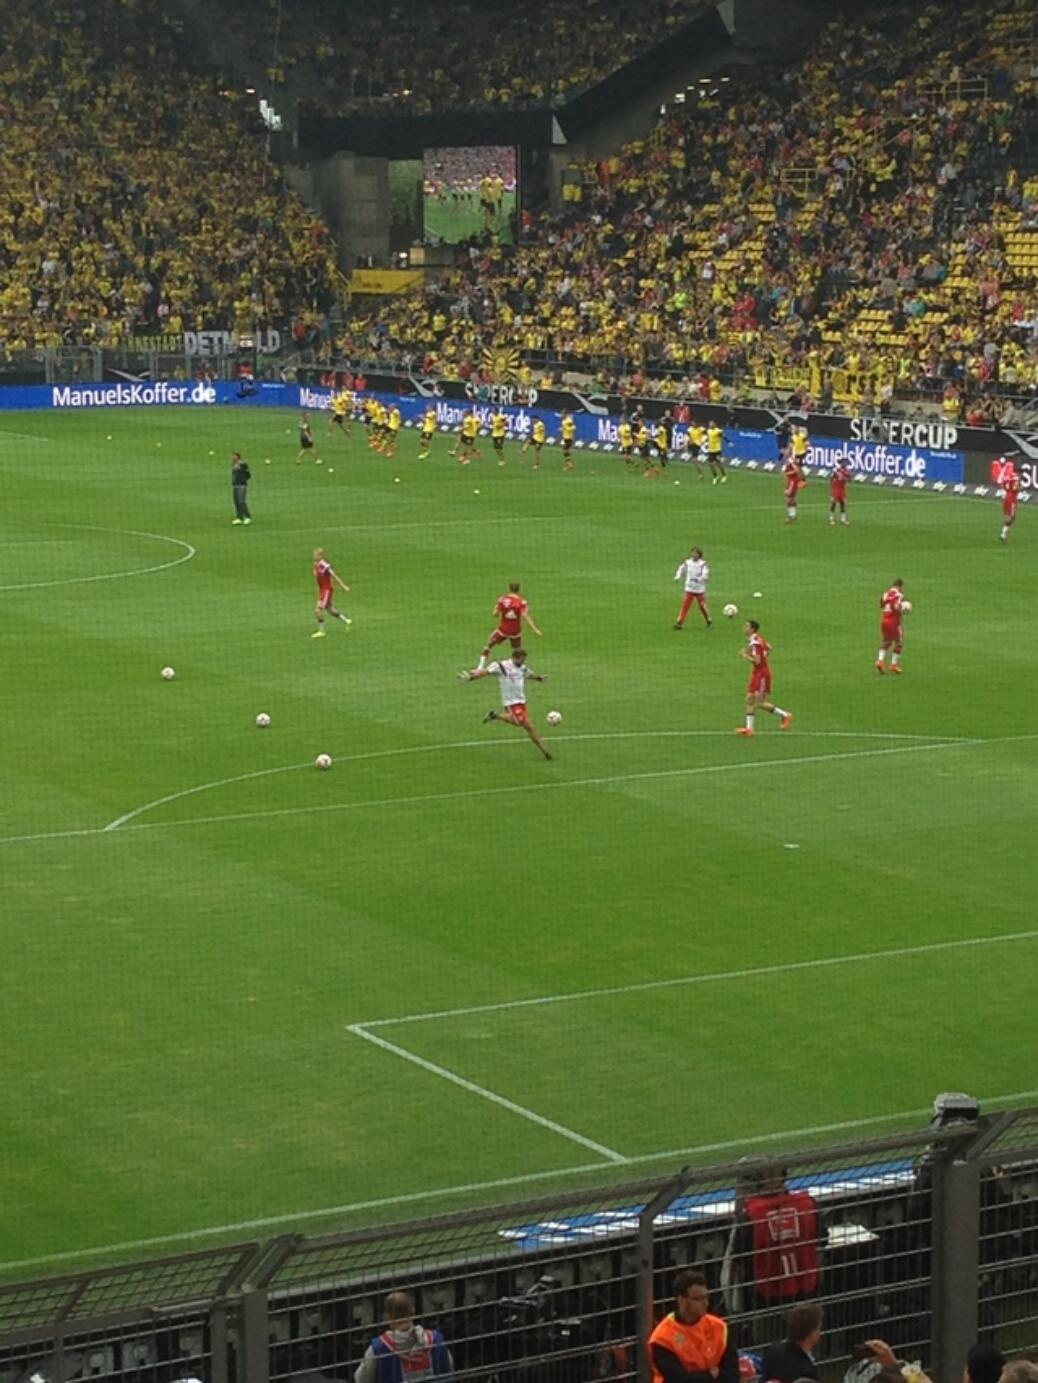 Supercup – BVB vs. FCB